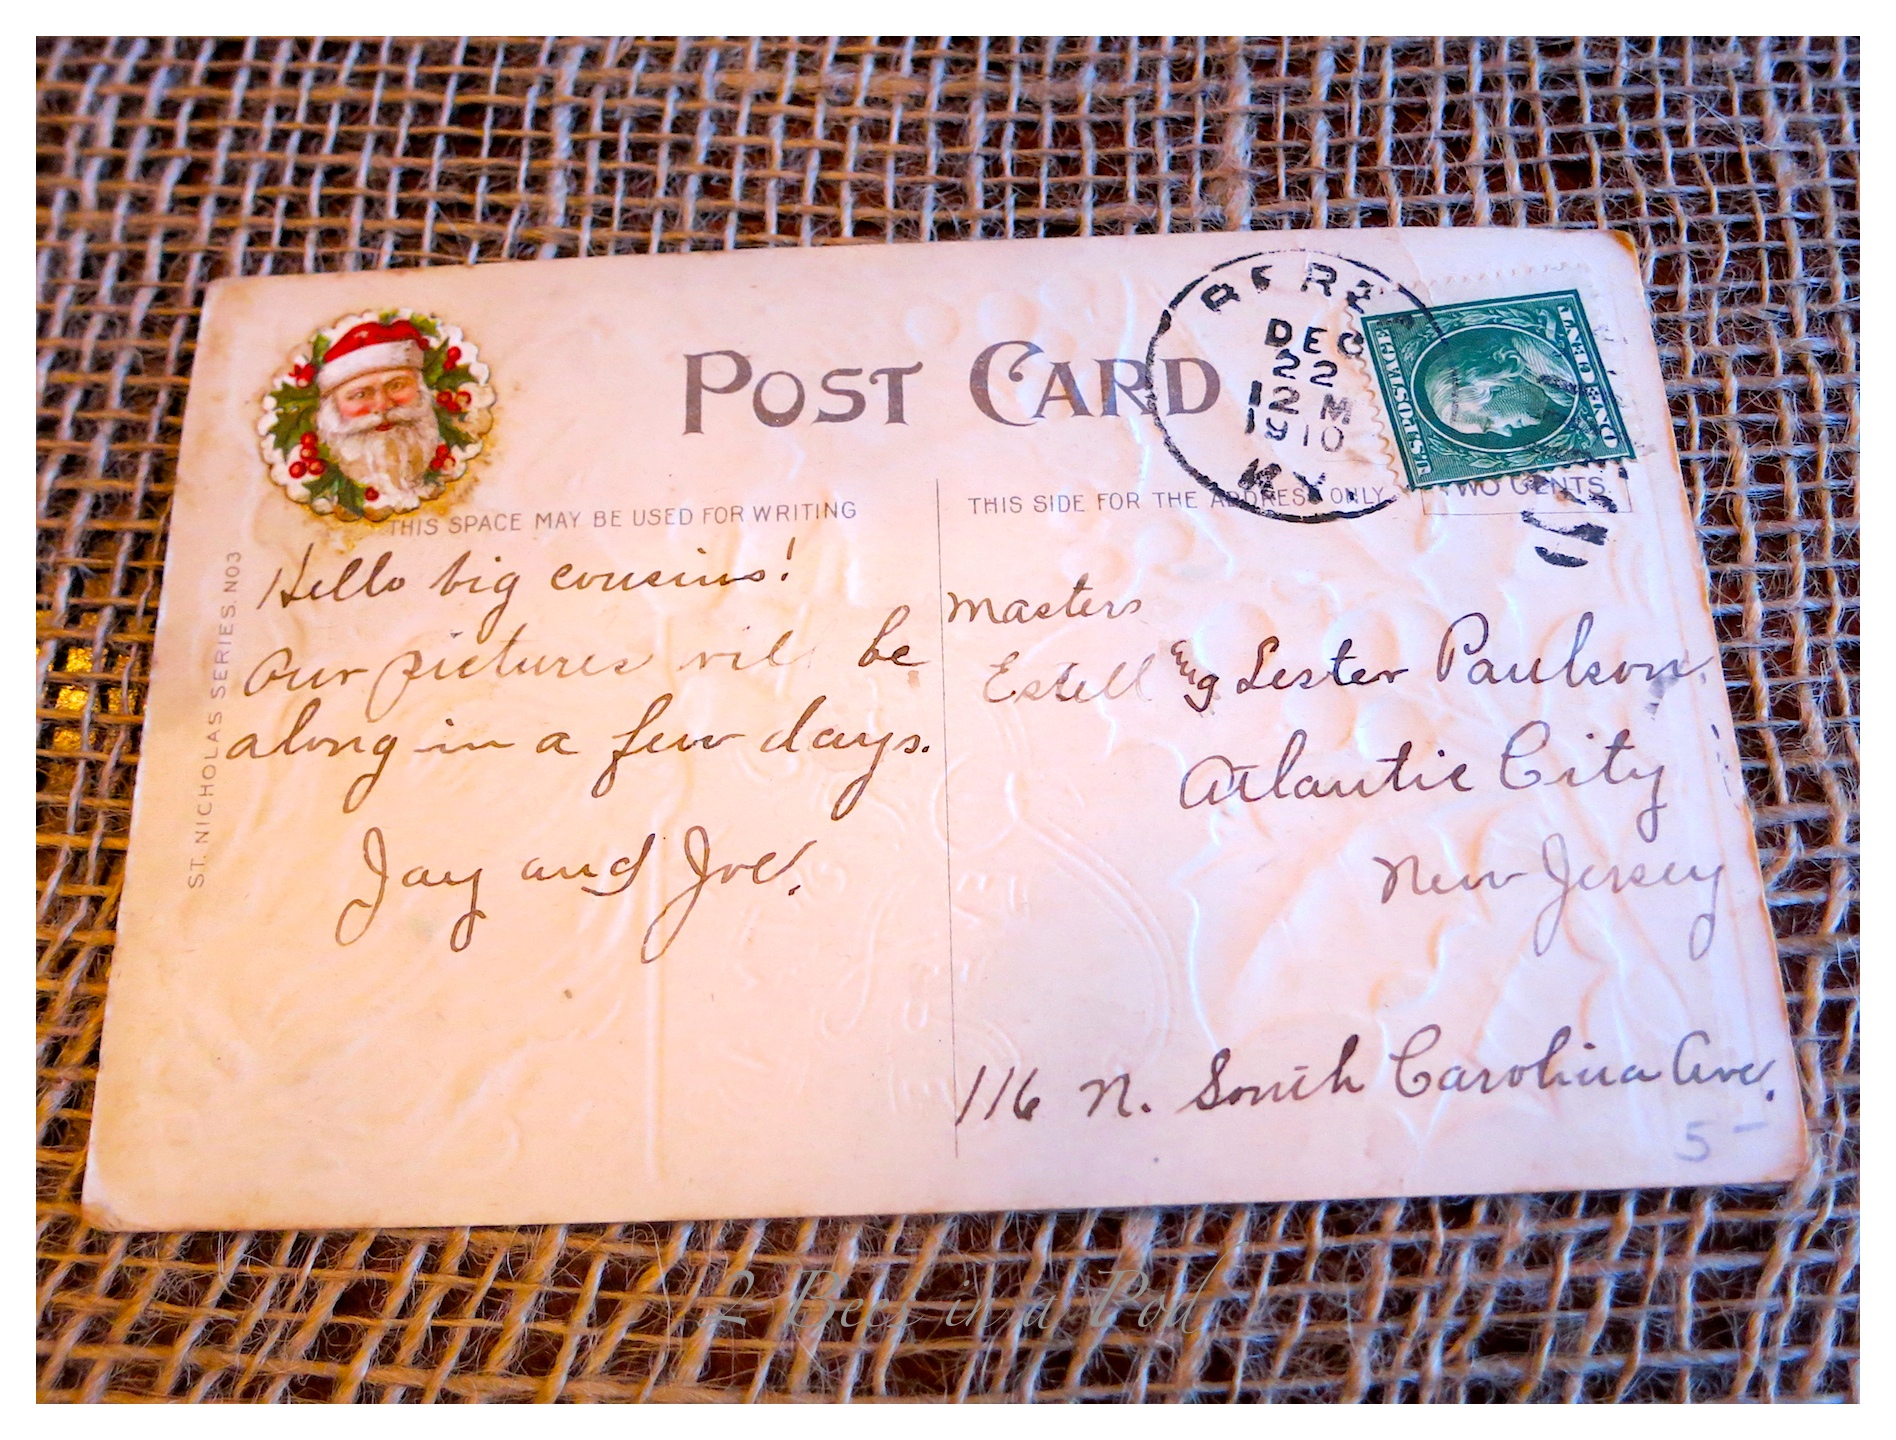 Rustic Christmas - I love the crusty, rusty, chippy and warmth that rustic elements bring to my home for Christmas!  This is the backside of the 1910 Christmas postcard.  Isnt the Santa decal wonderful too?